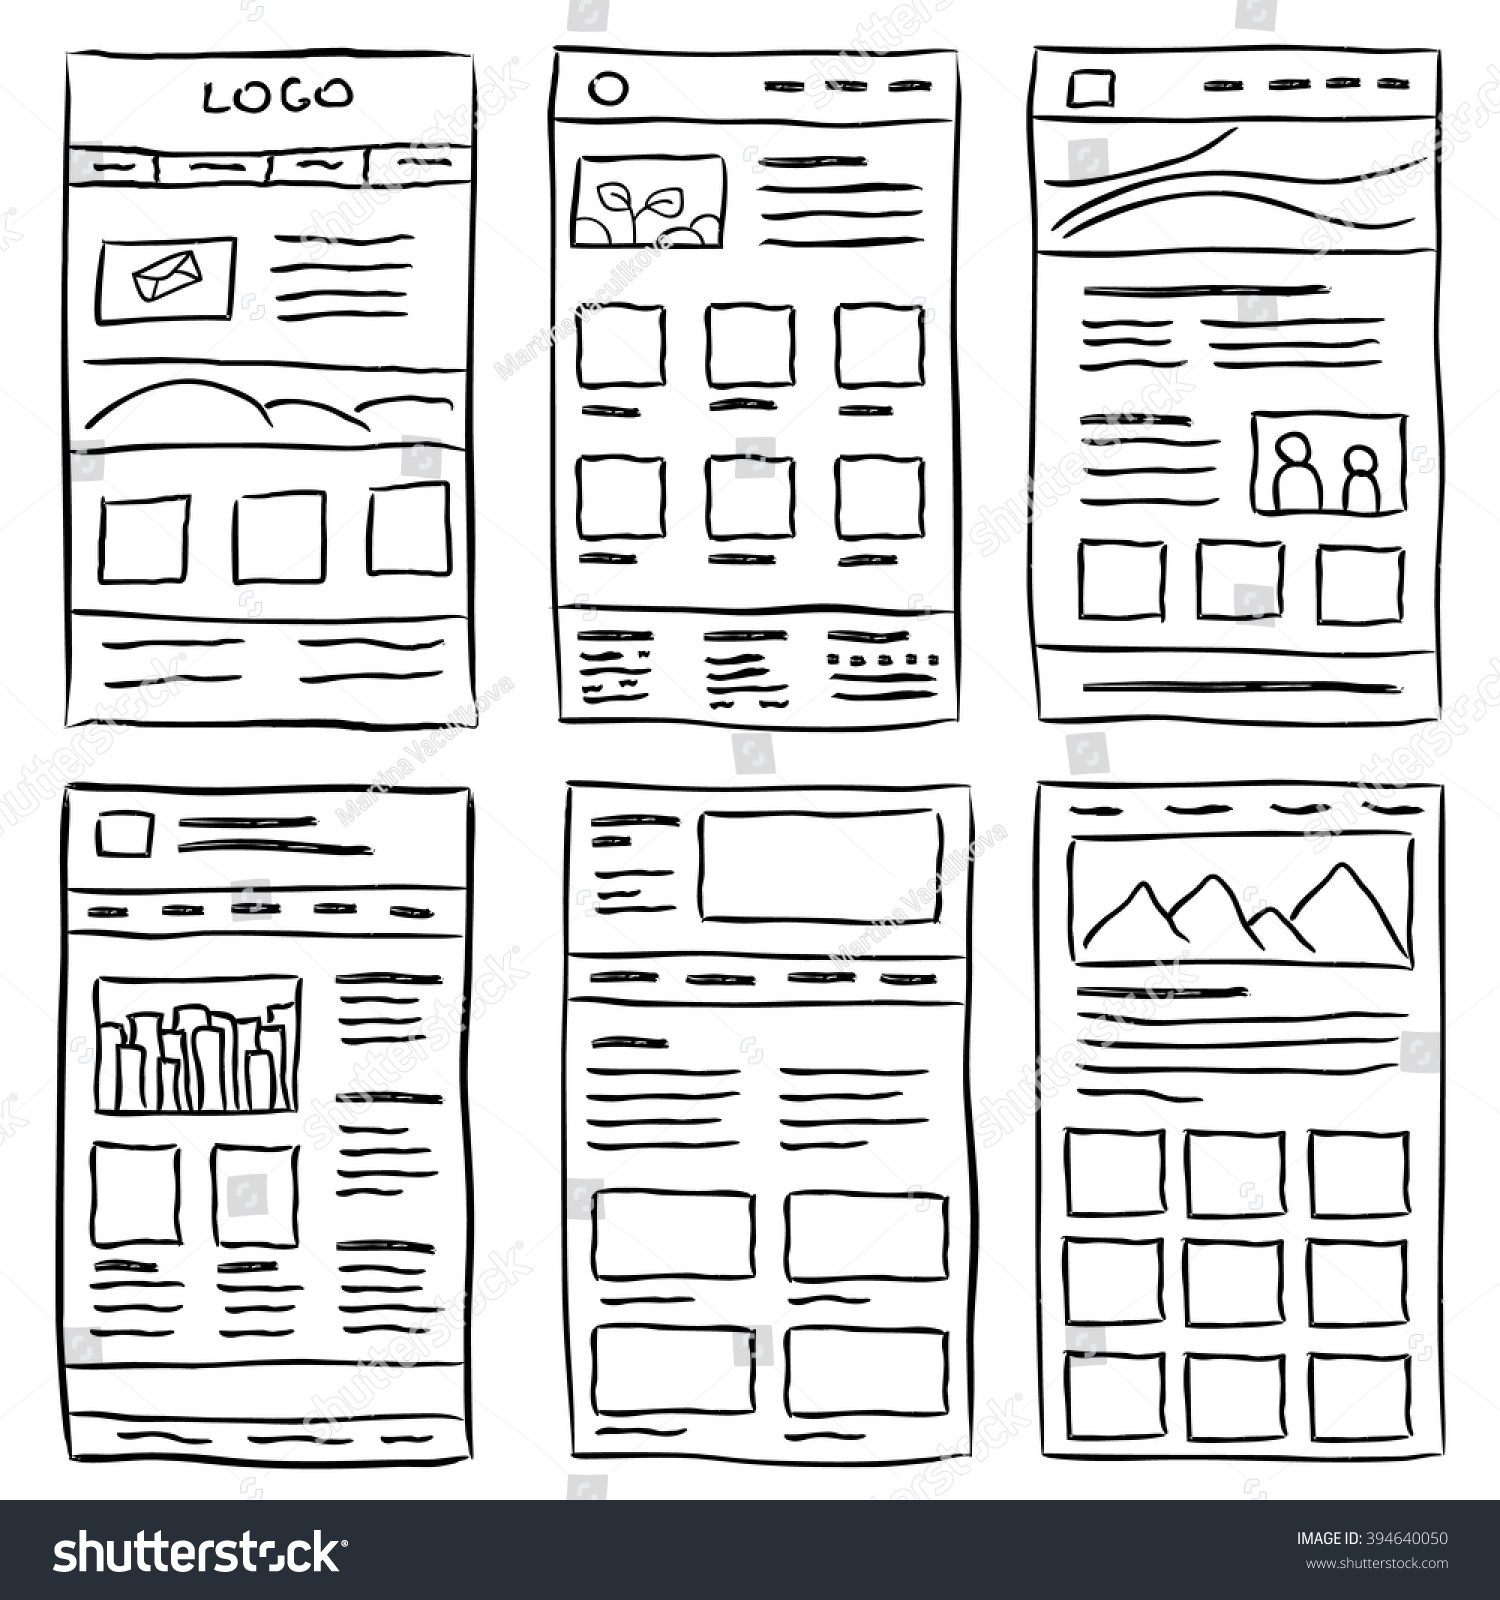 hand drawn website layouts doodle style のベクター画像素材